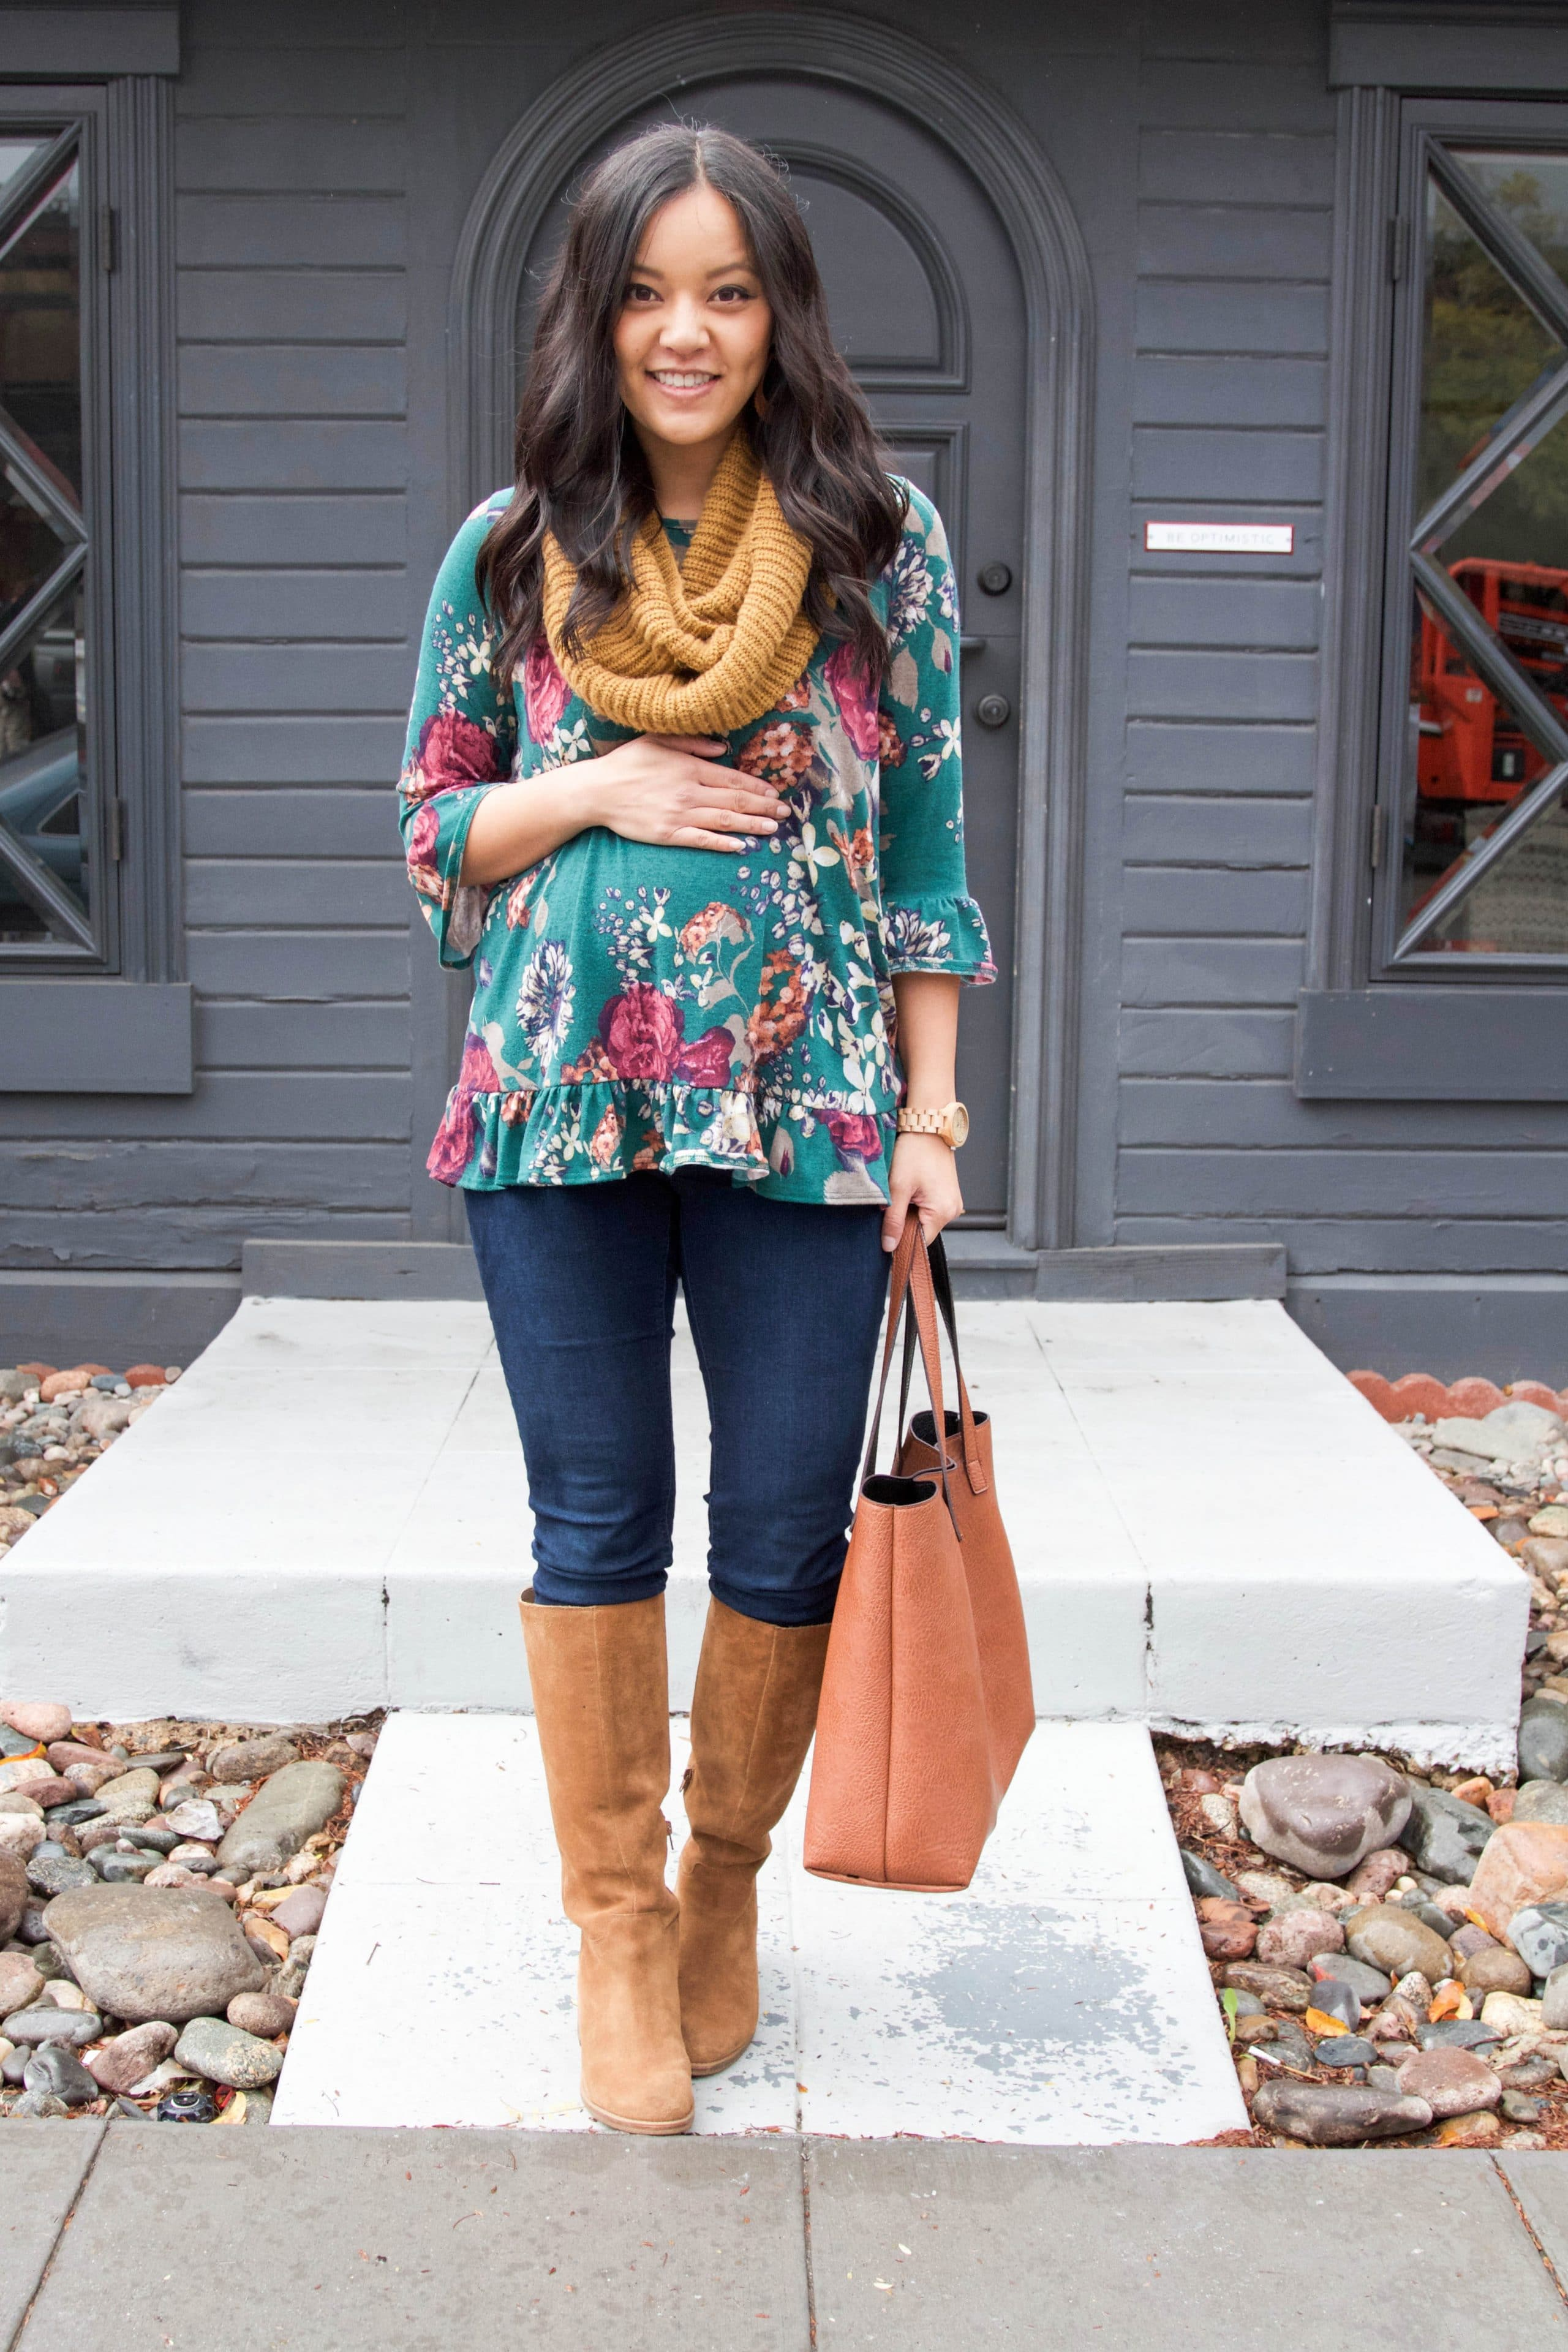 Floral Top + Infinity Scarf + Cognac Boots + Tote Bag